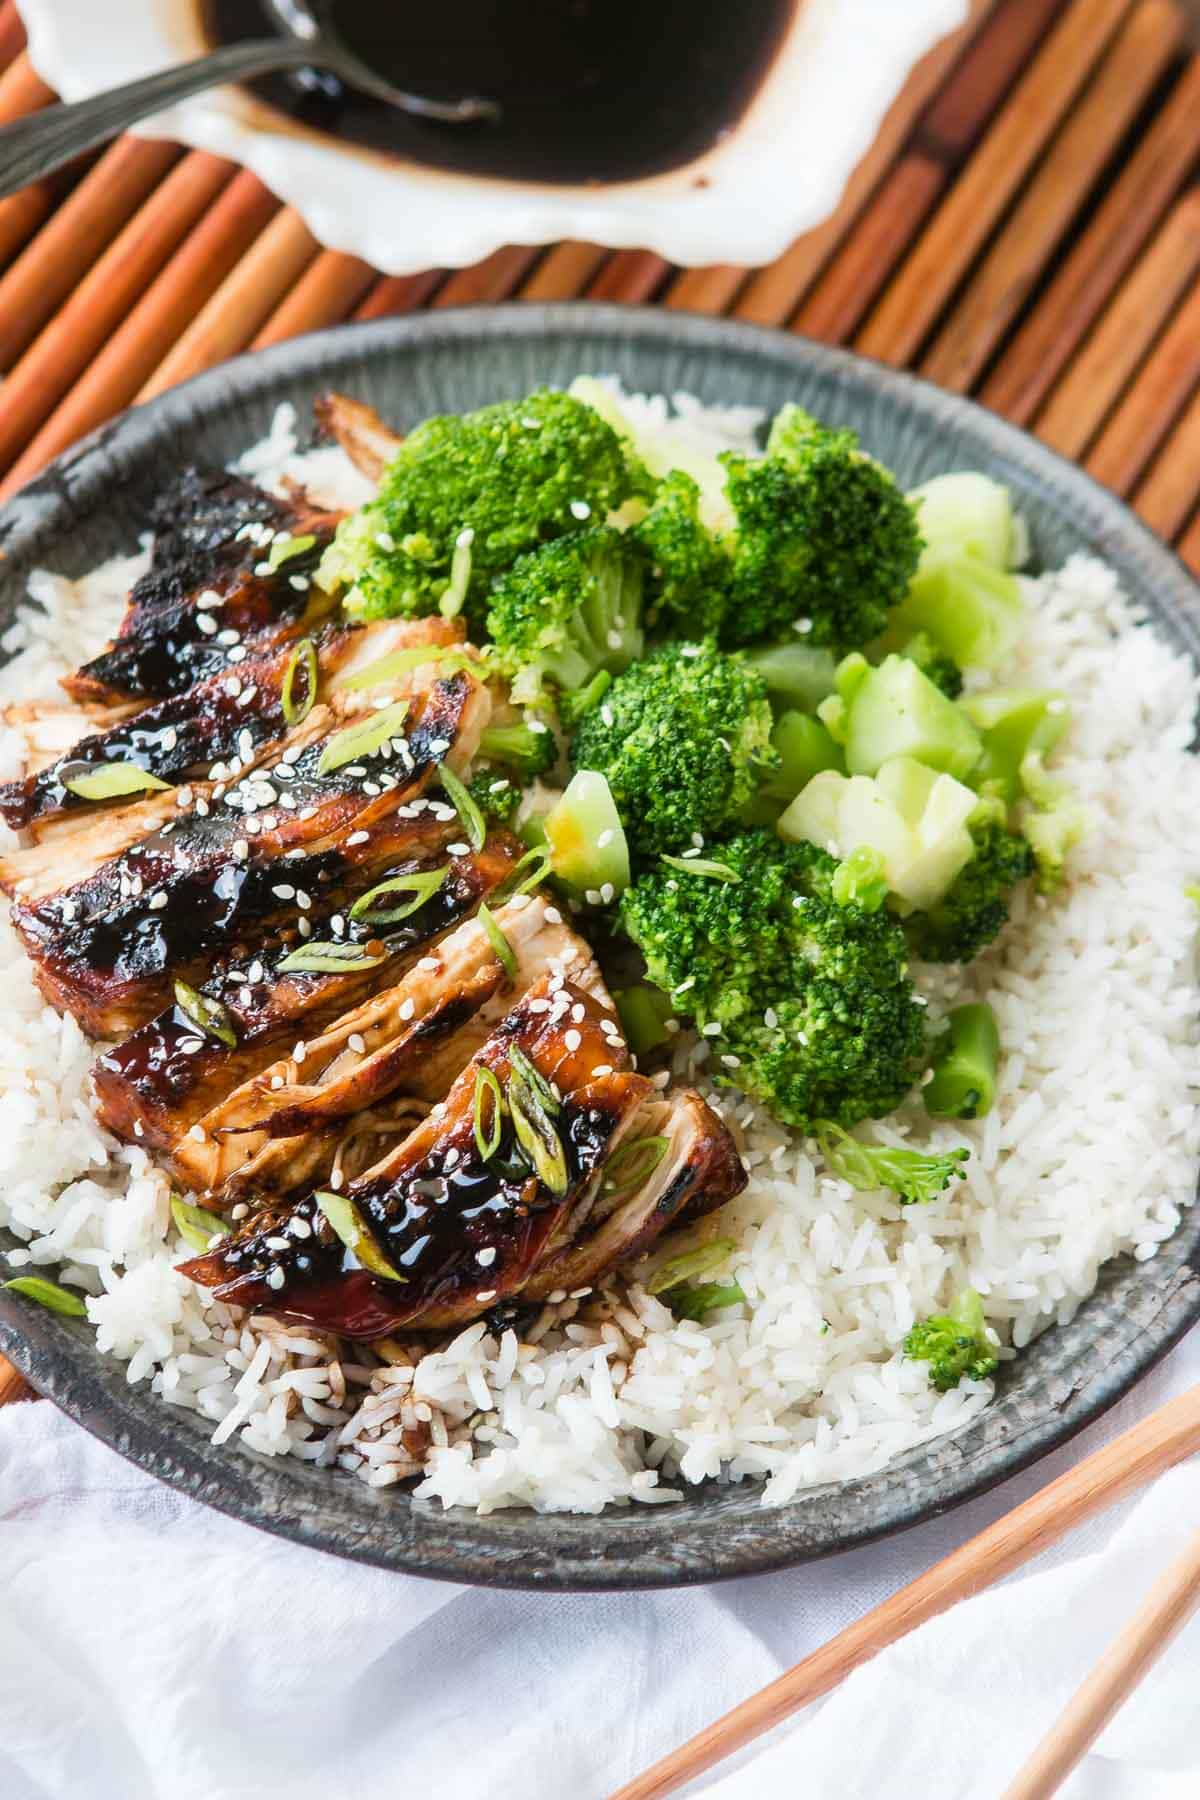 Need a really good recipe for Asian Chicken but don't want a crazy list of ingredients you don't have on hand? Here's Sticky Asian Grilled Chicken Breasts! Sticky Asian sauce made with soy sauce and sweet chili sauce served over chicken and rice ohsweetbasil.com